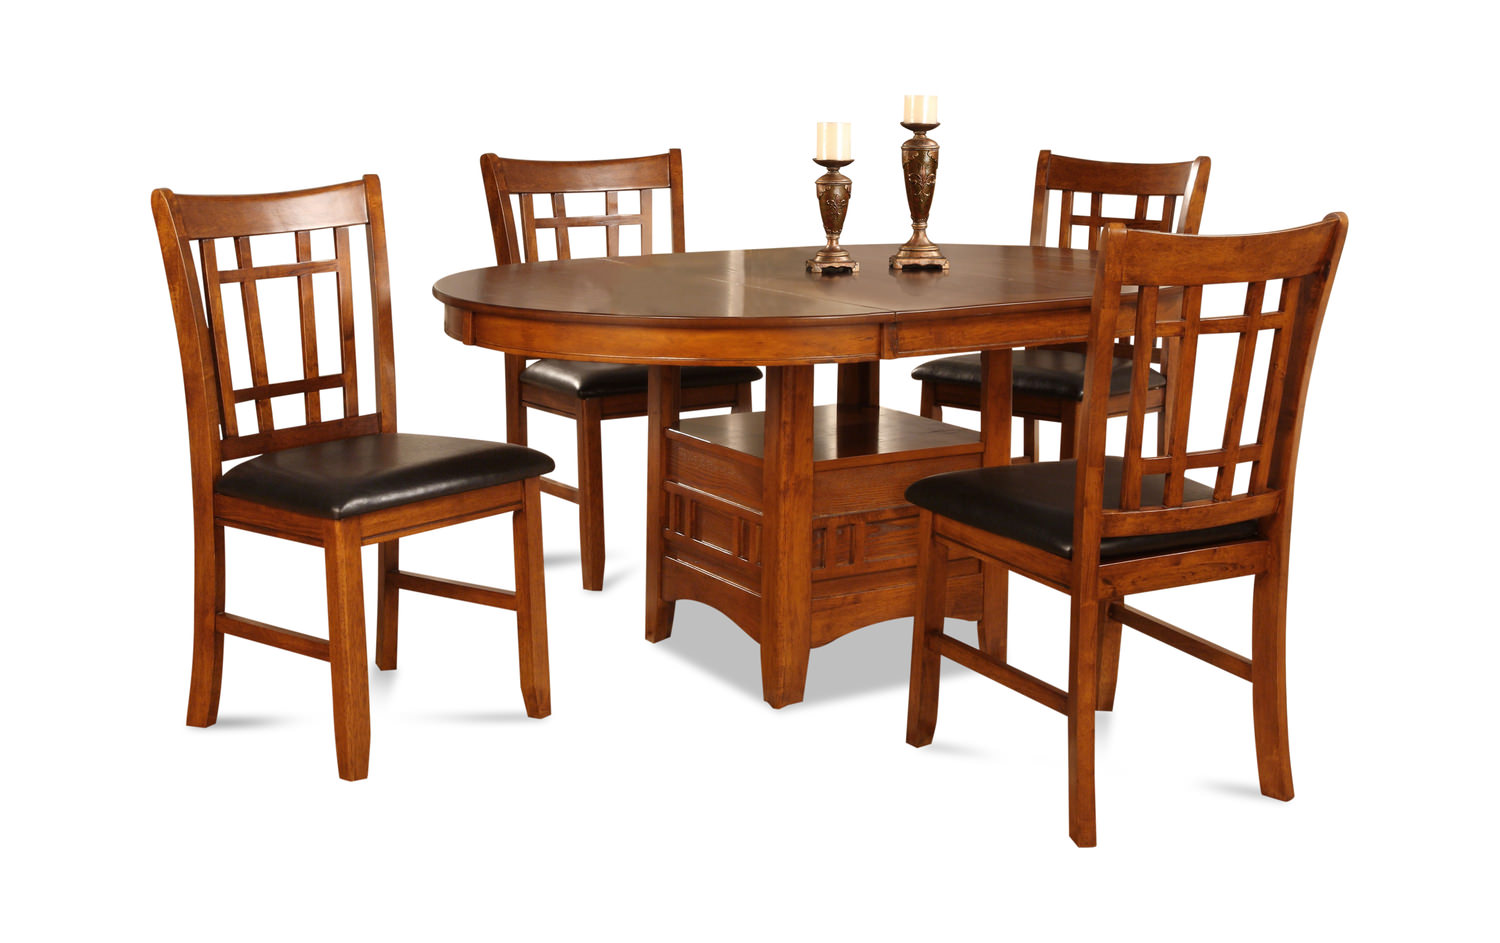 Image Mission Park Dining Table With 4 Chairs